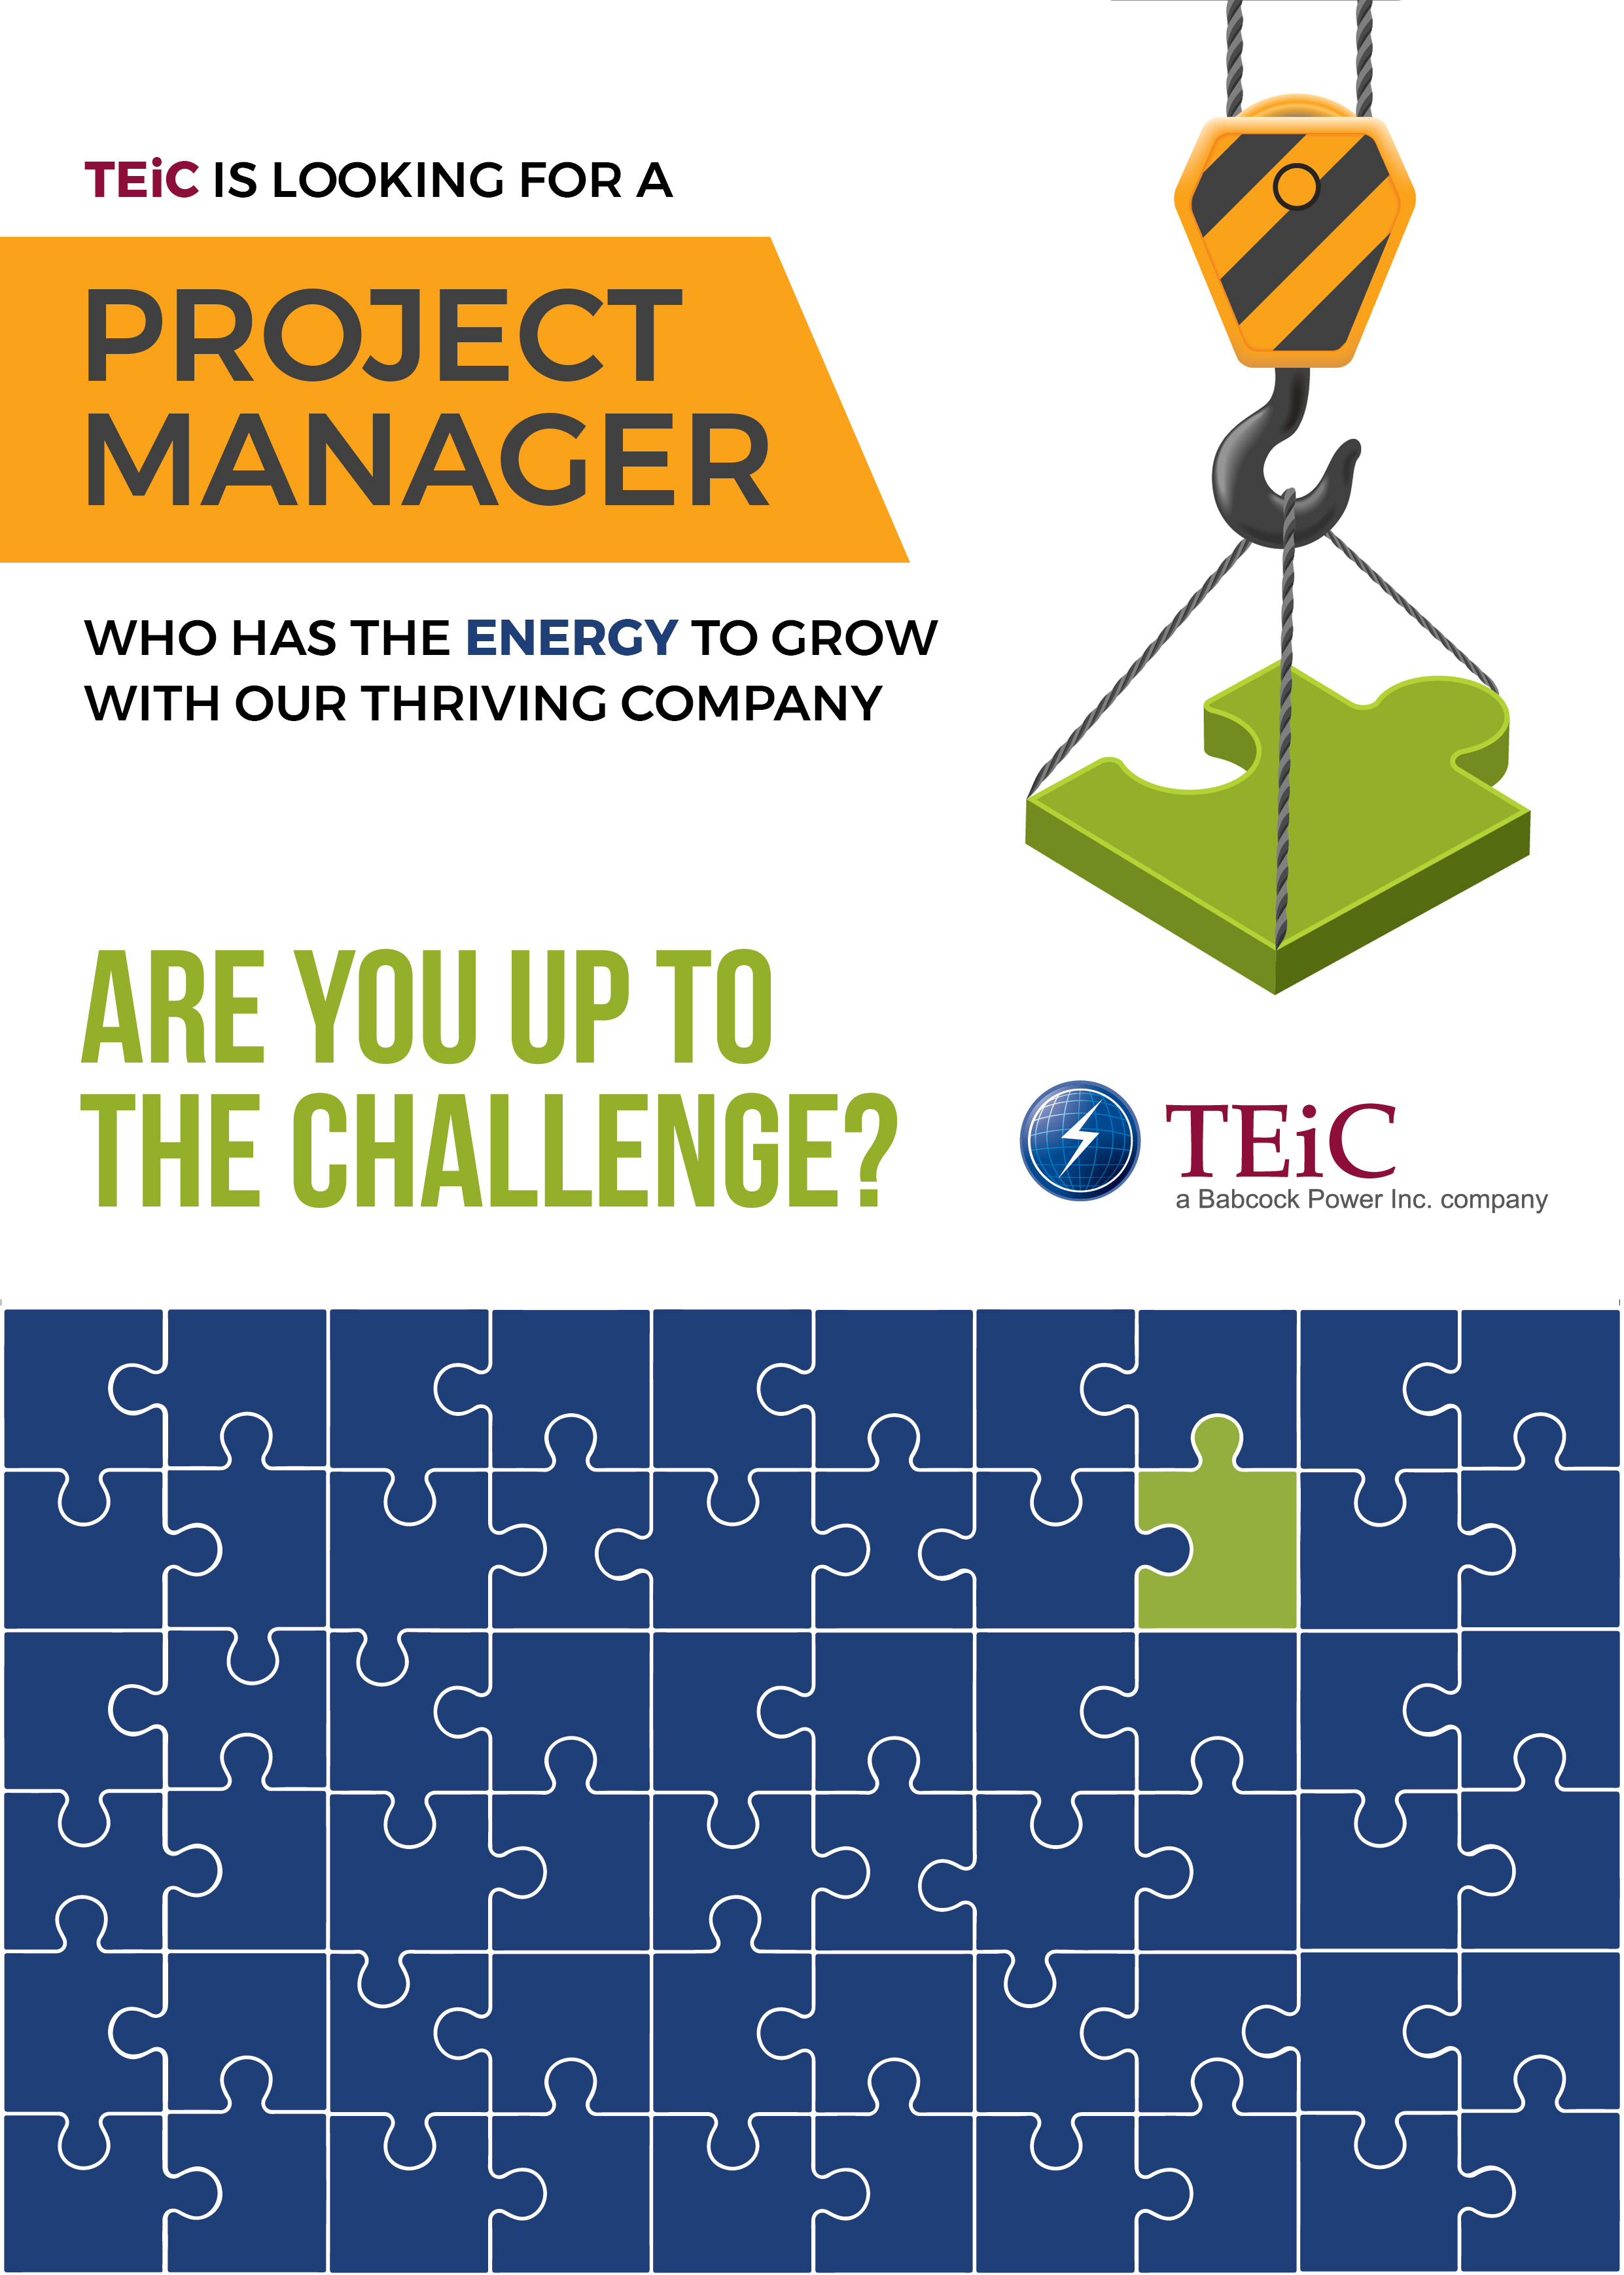 TEiC Project Manager